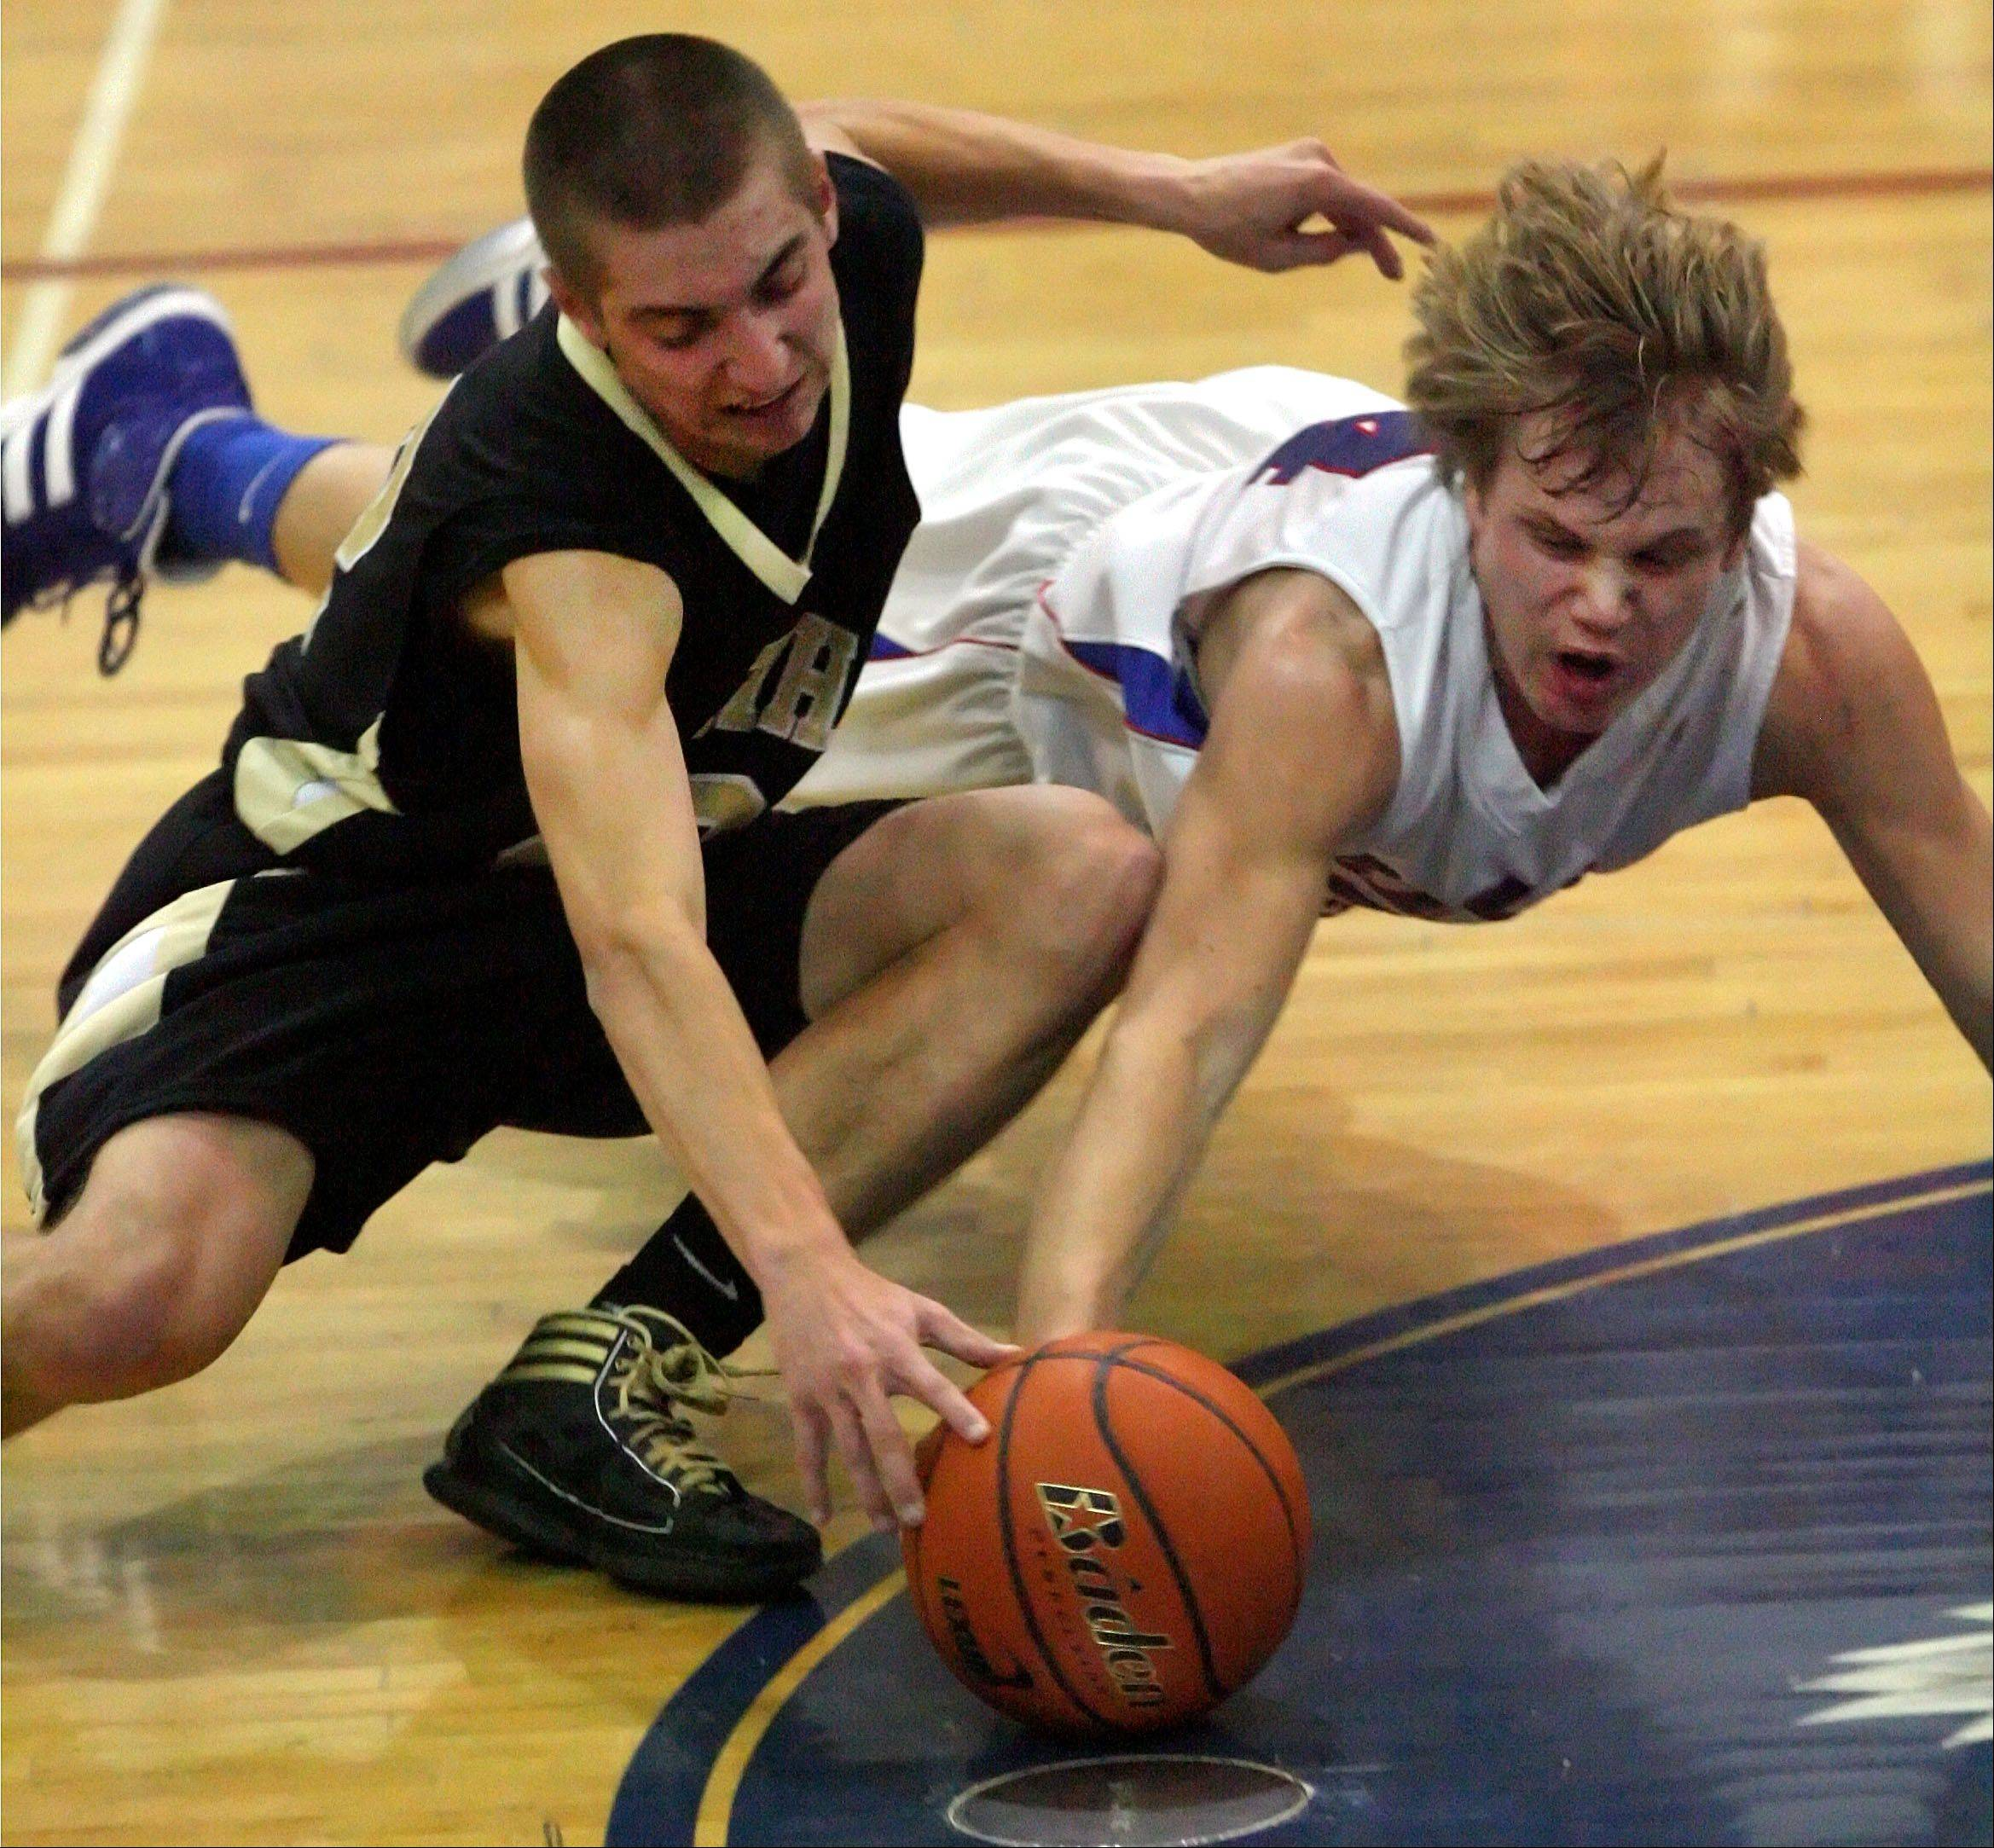 Grayslake North's Danny Mateling, left, and Lakes' Justin Bergeron battle for a loose ball during their game Tuesday night in Lake Villa.